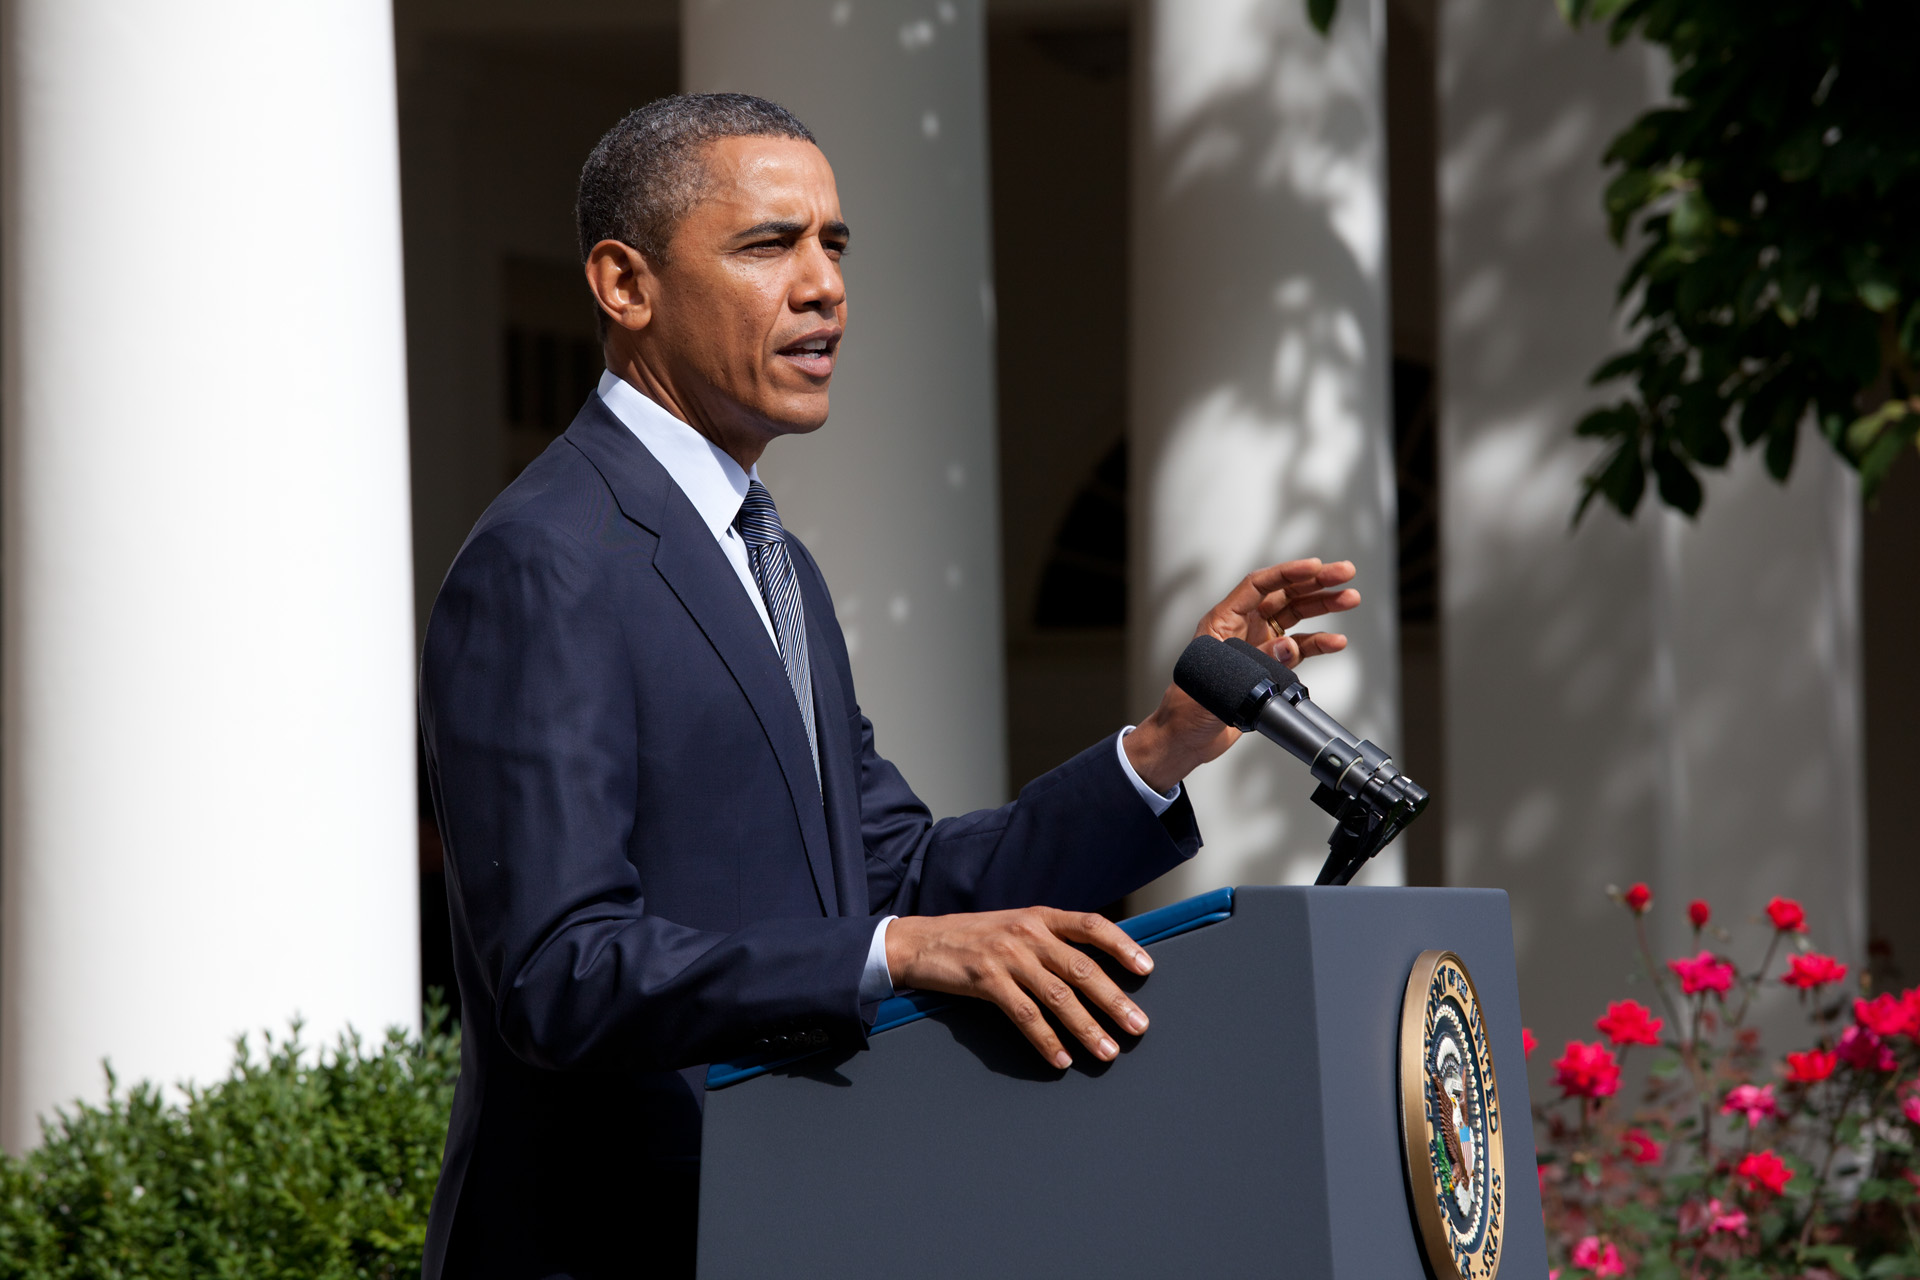 President Obama announces his Plan for Economic Growth and Deficit Reduction